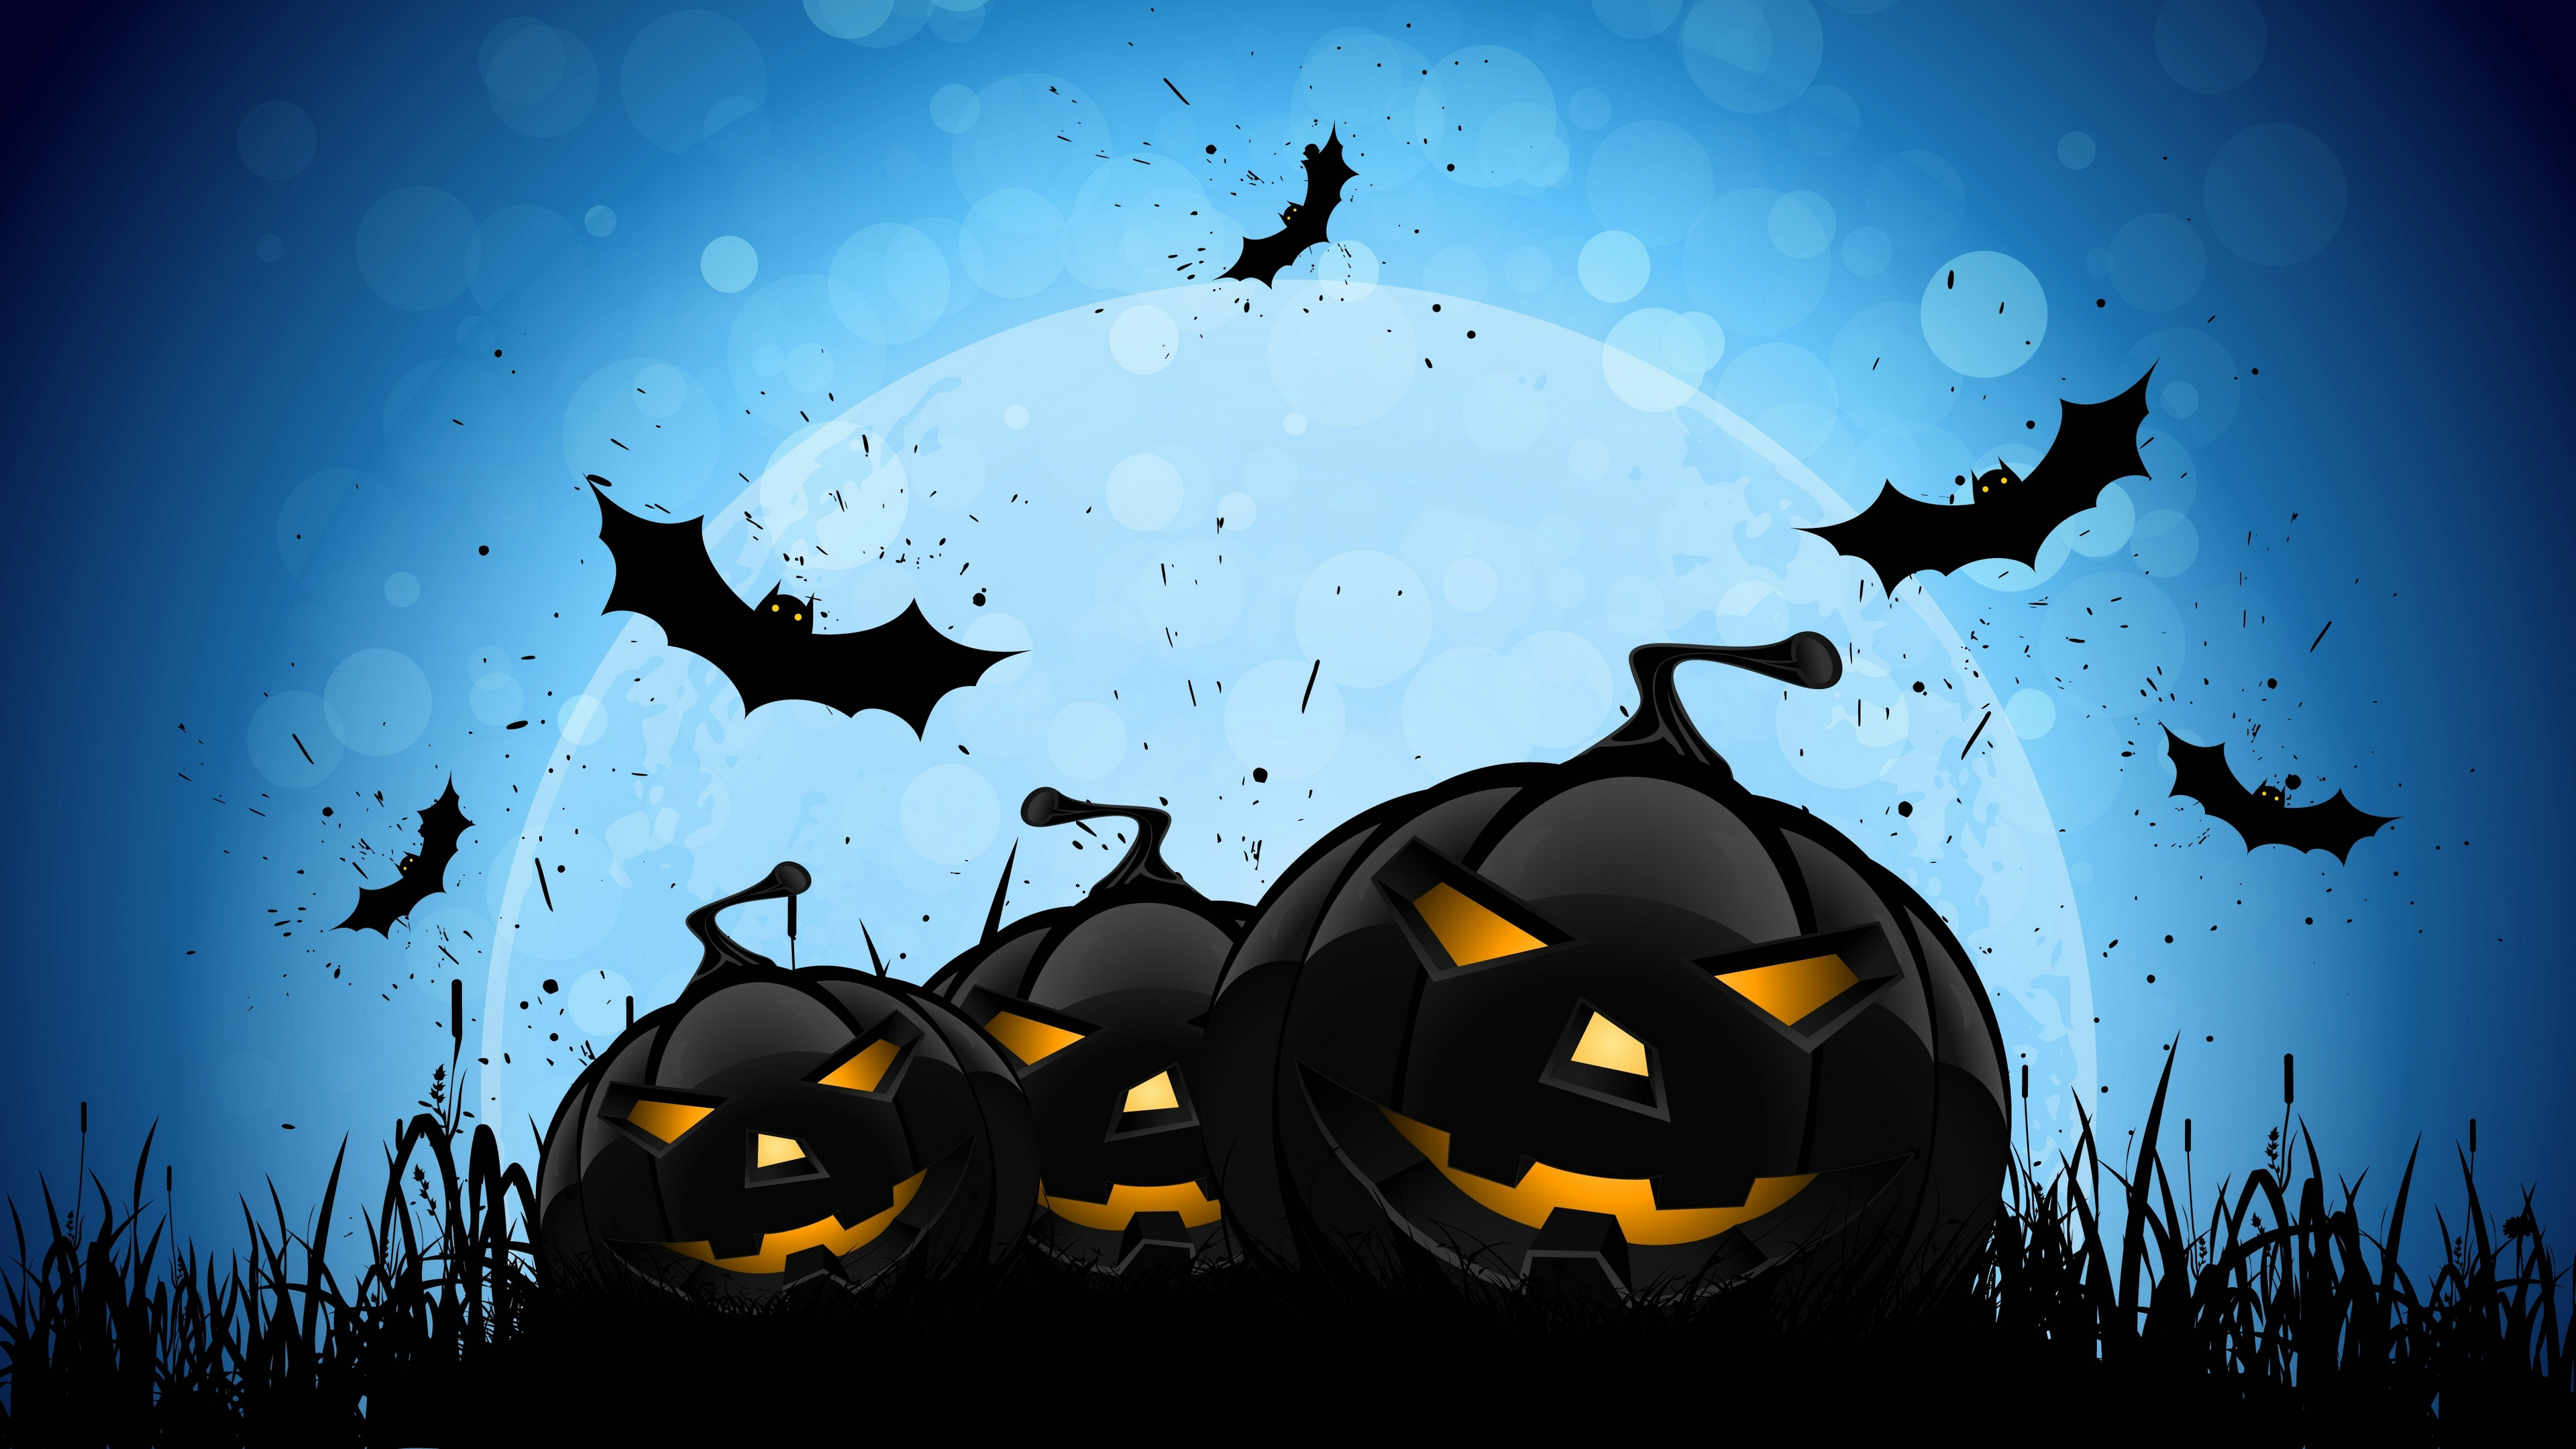 Halloween Pumpkin Wallpaper Images